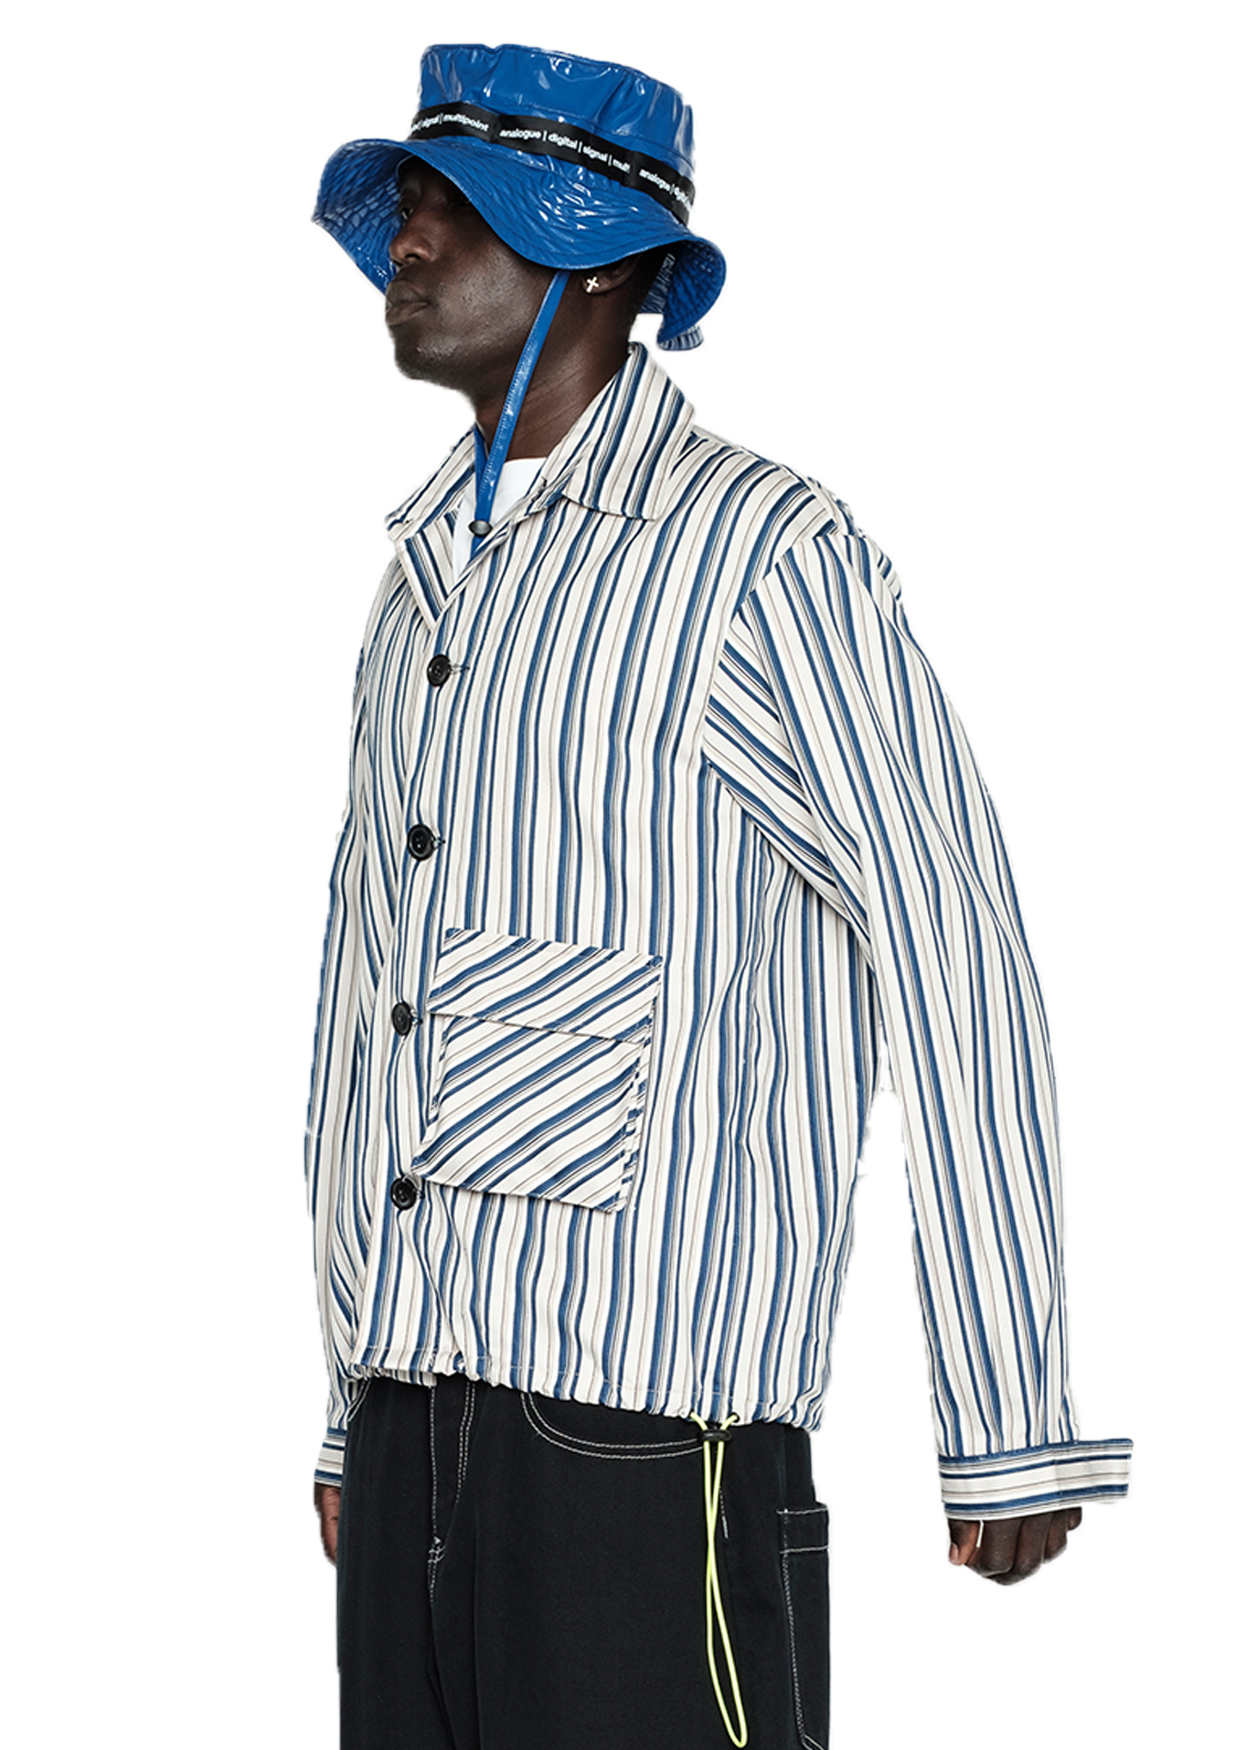 DALAMAN WORK SHIRT - BLUE